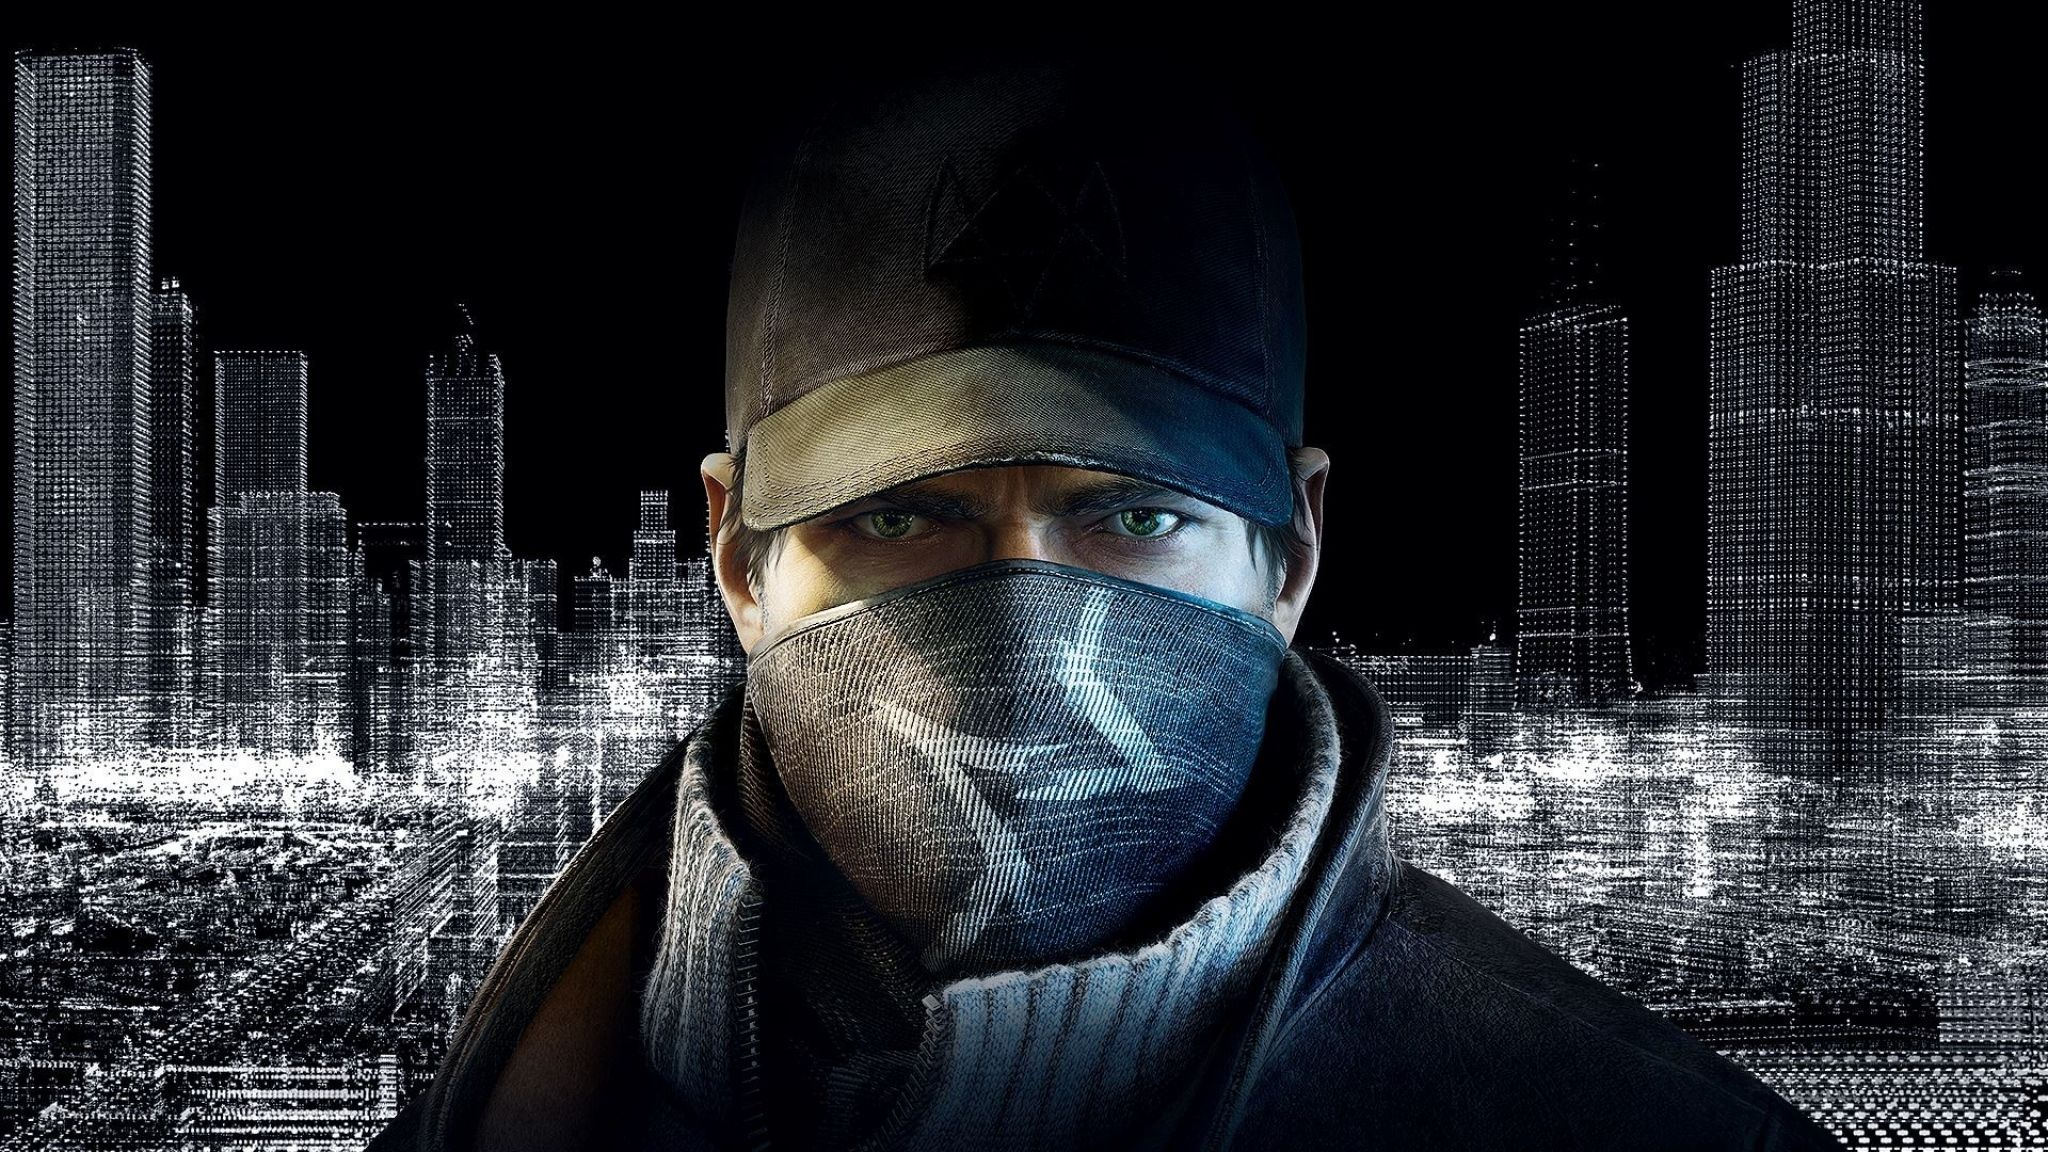 Aiden Pearce Watch Dogs Wallpaper Game Wallpapers Dog